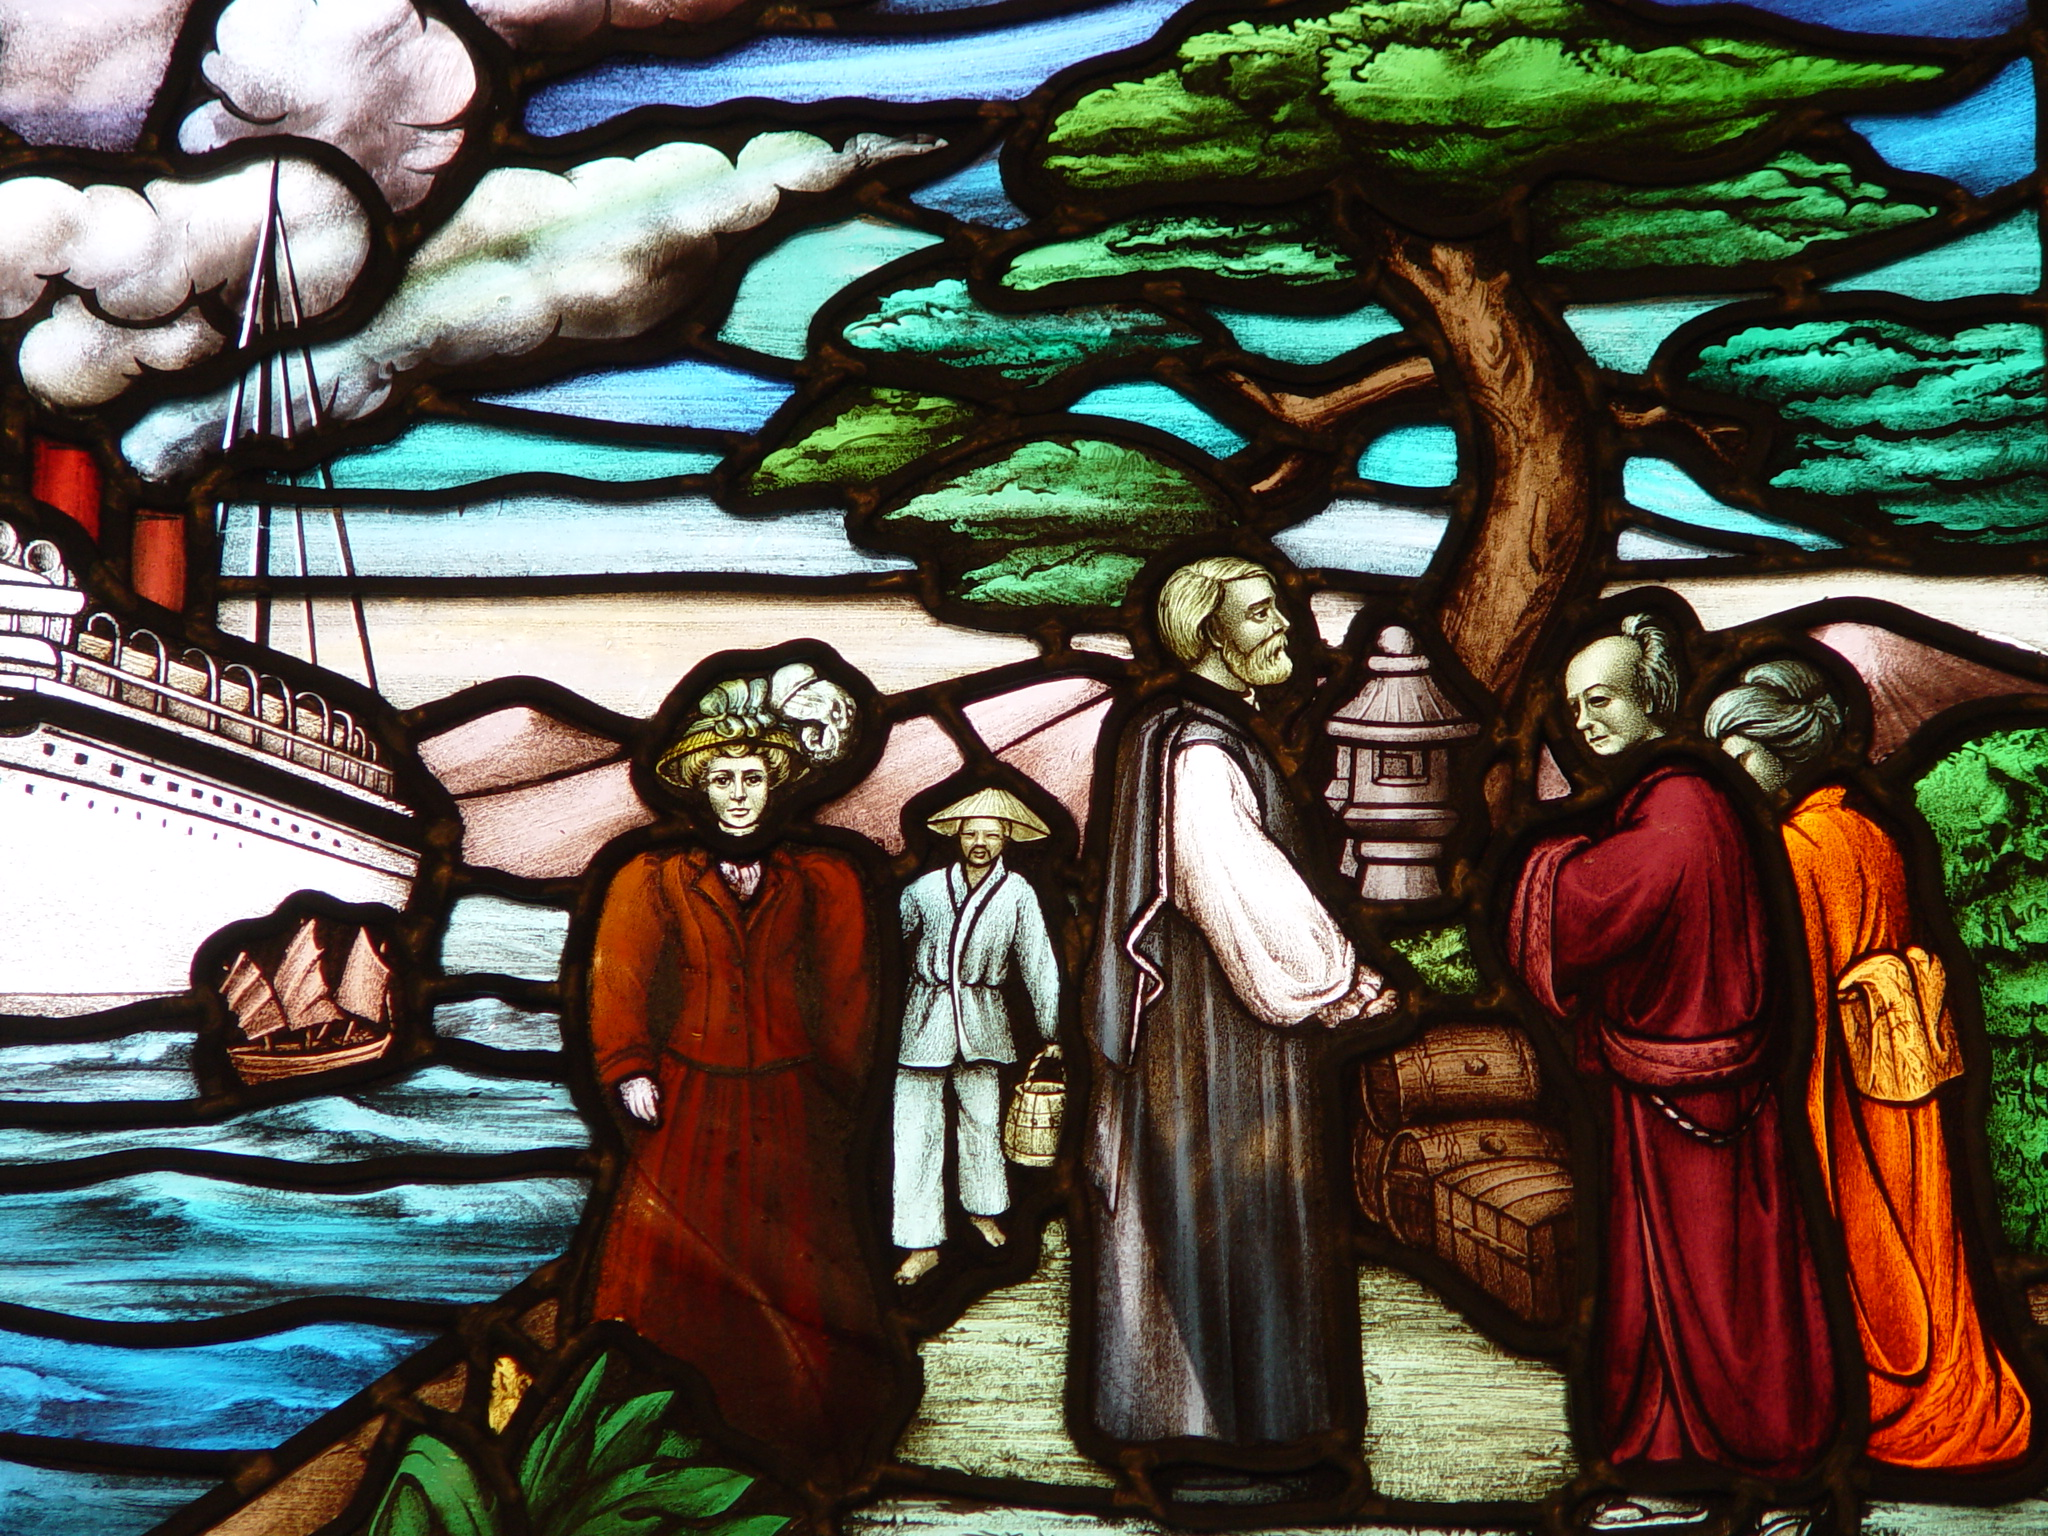 Stain glass depicting The Rev. and Mrs. James Cooper Robinson arrived in Japan on September 15, 1889